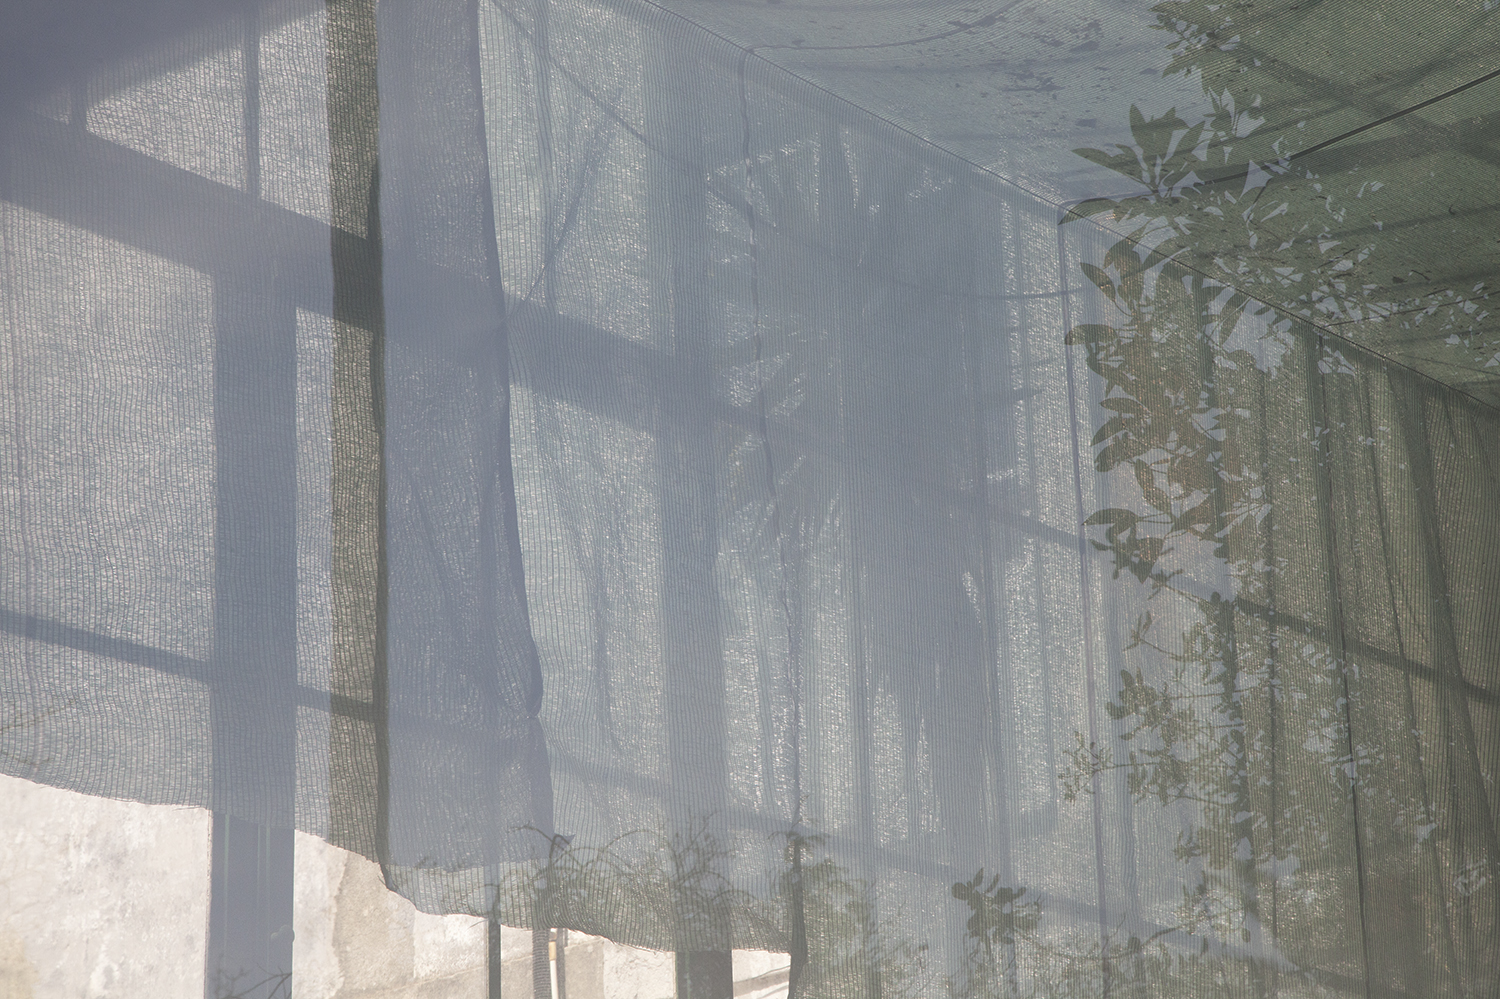 carina martins, urupe - nature reflected through windows 6